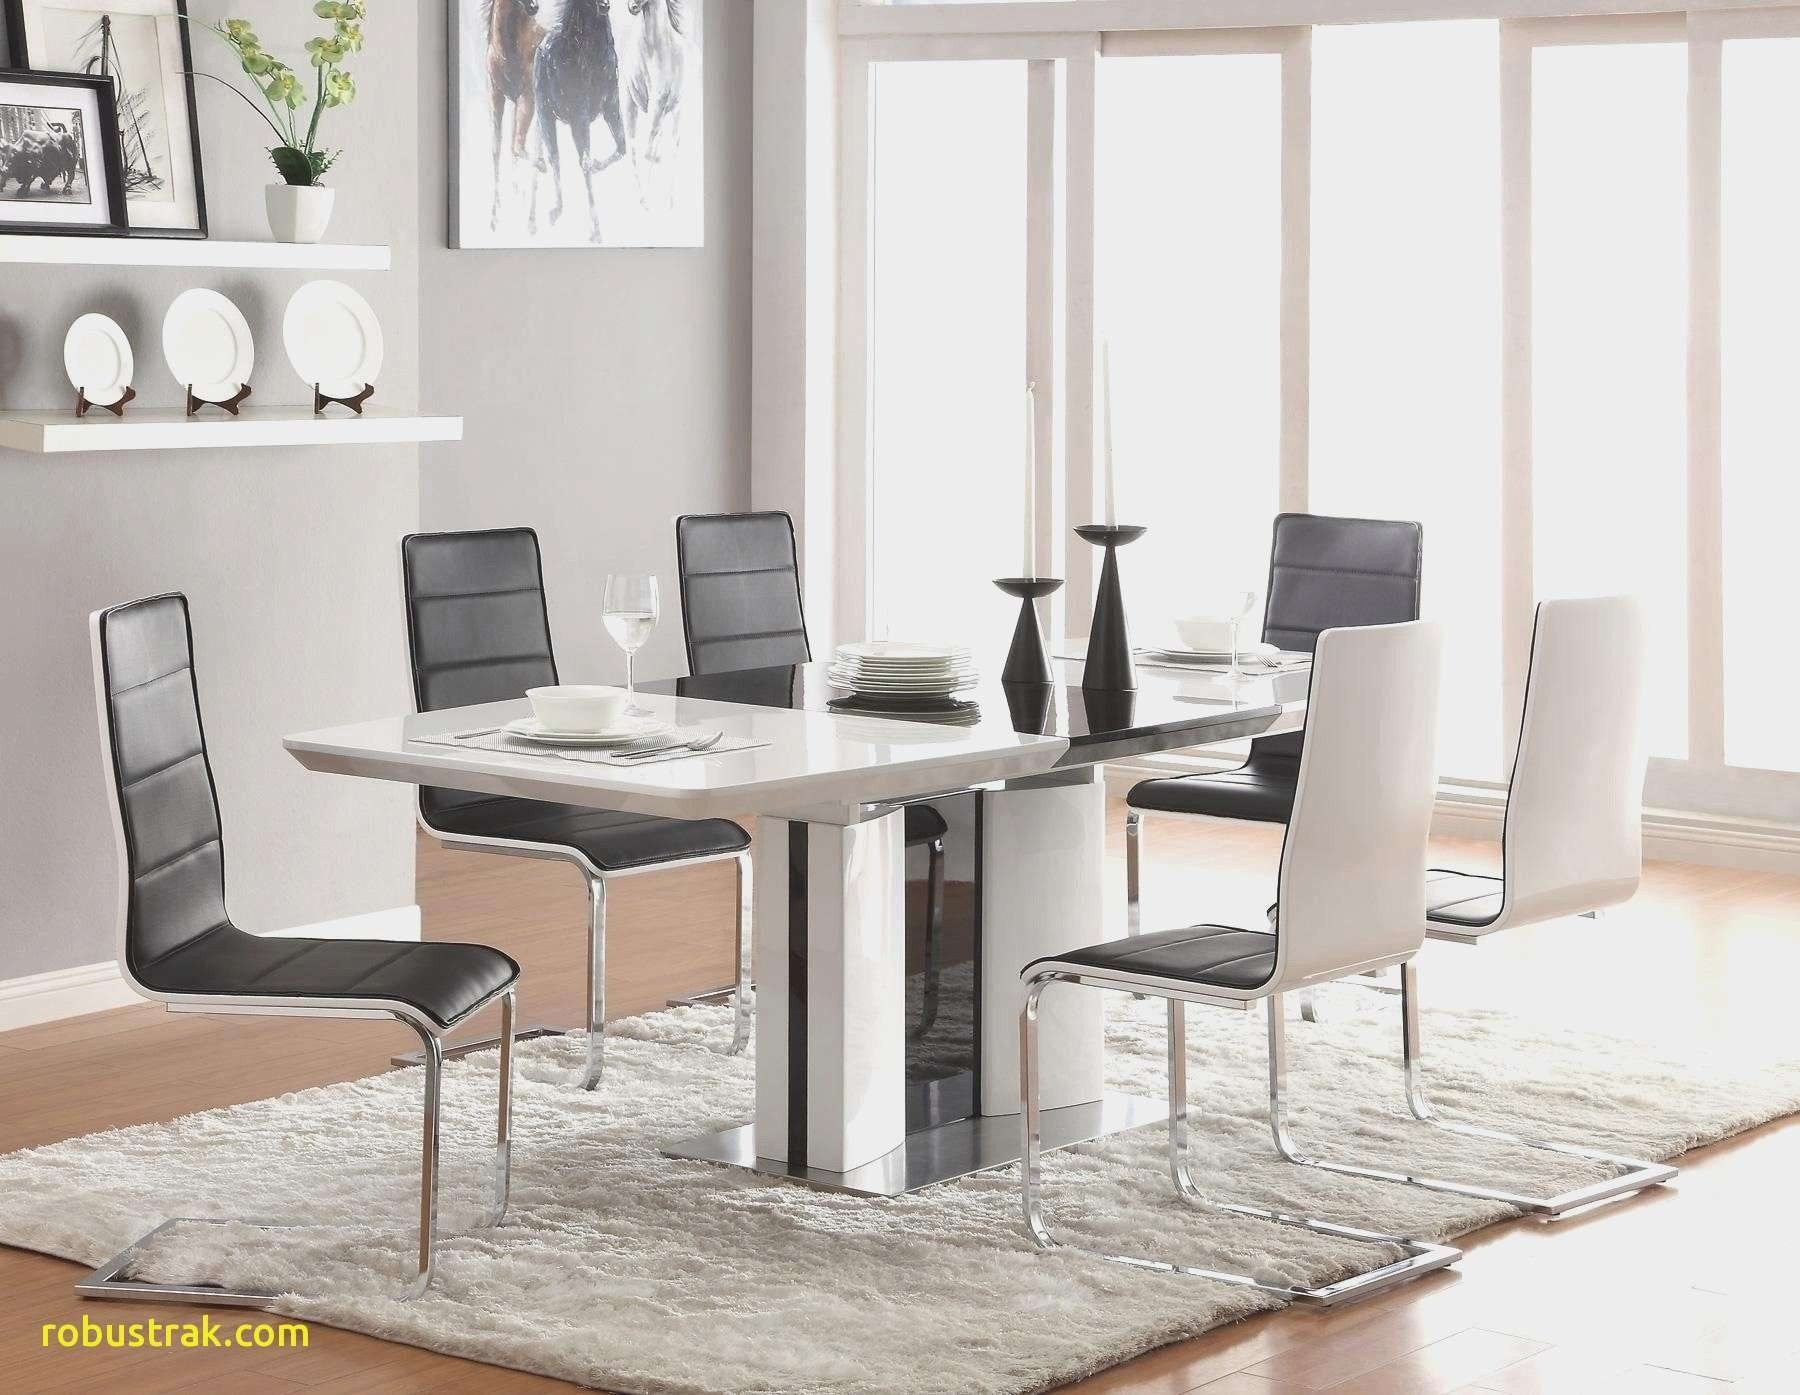 Modern Dining Room Decorations Inspirational Beautiful 25 Modern Dining Room Ideas Houzz Contemporary Dining Room Sets Modern Dining Room Set Dining Room Sets